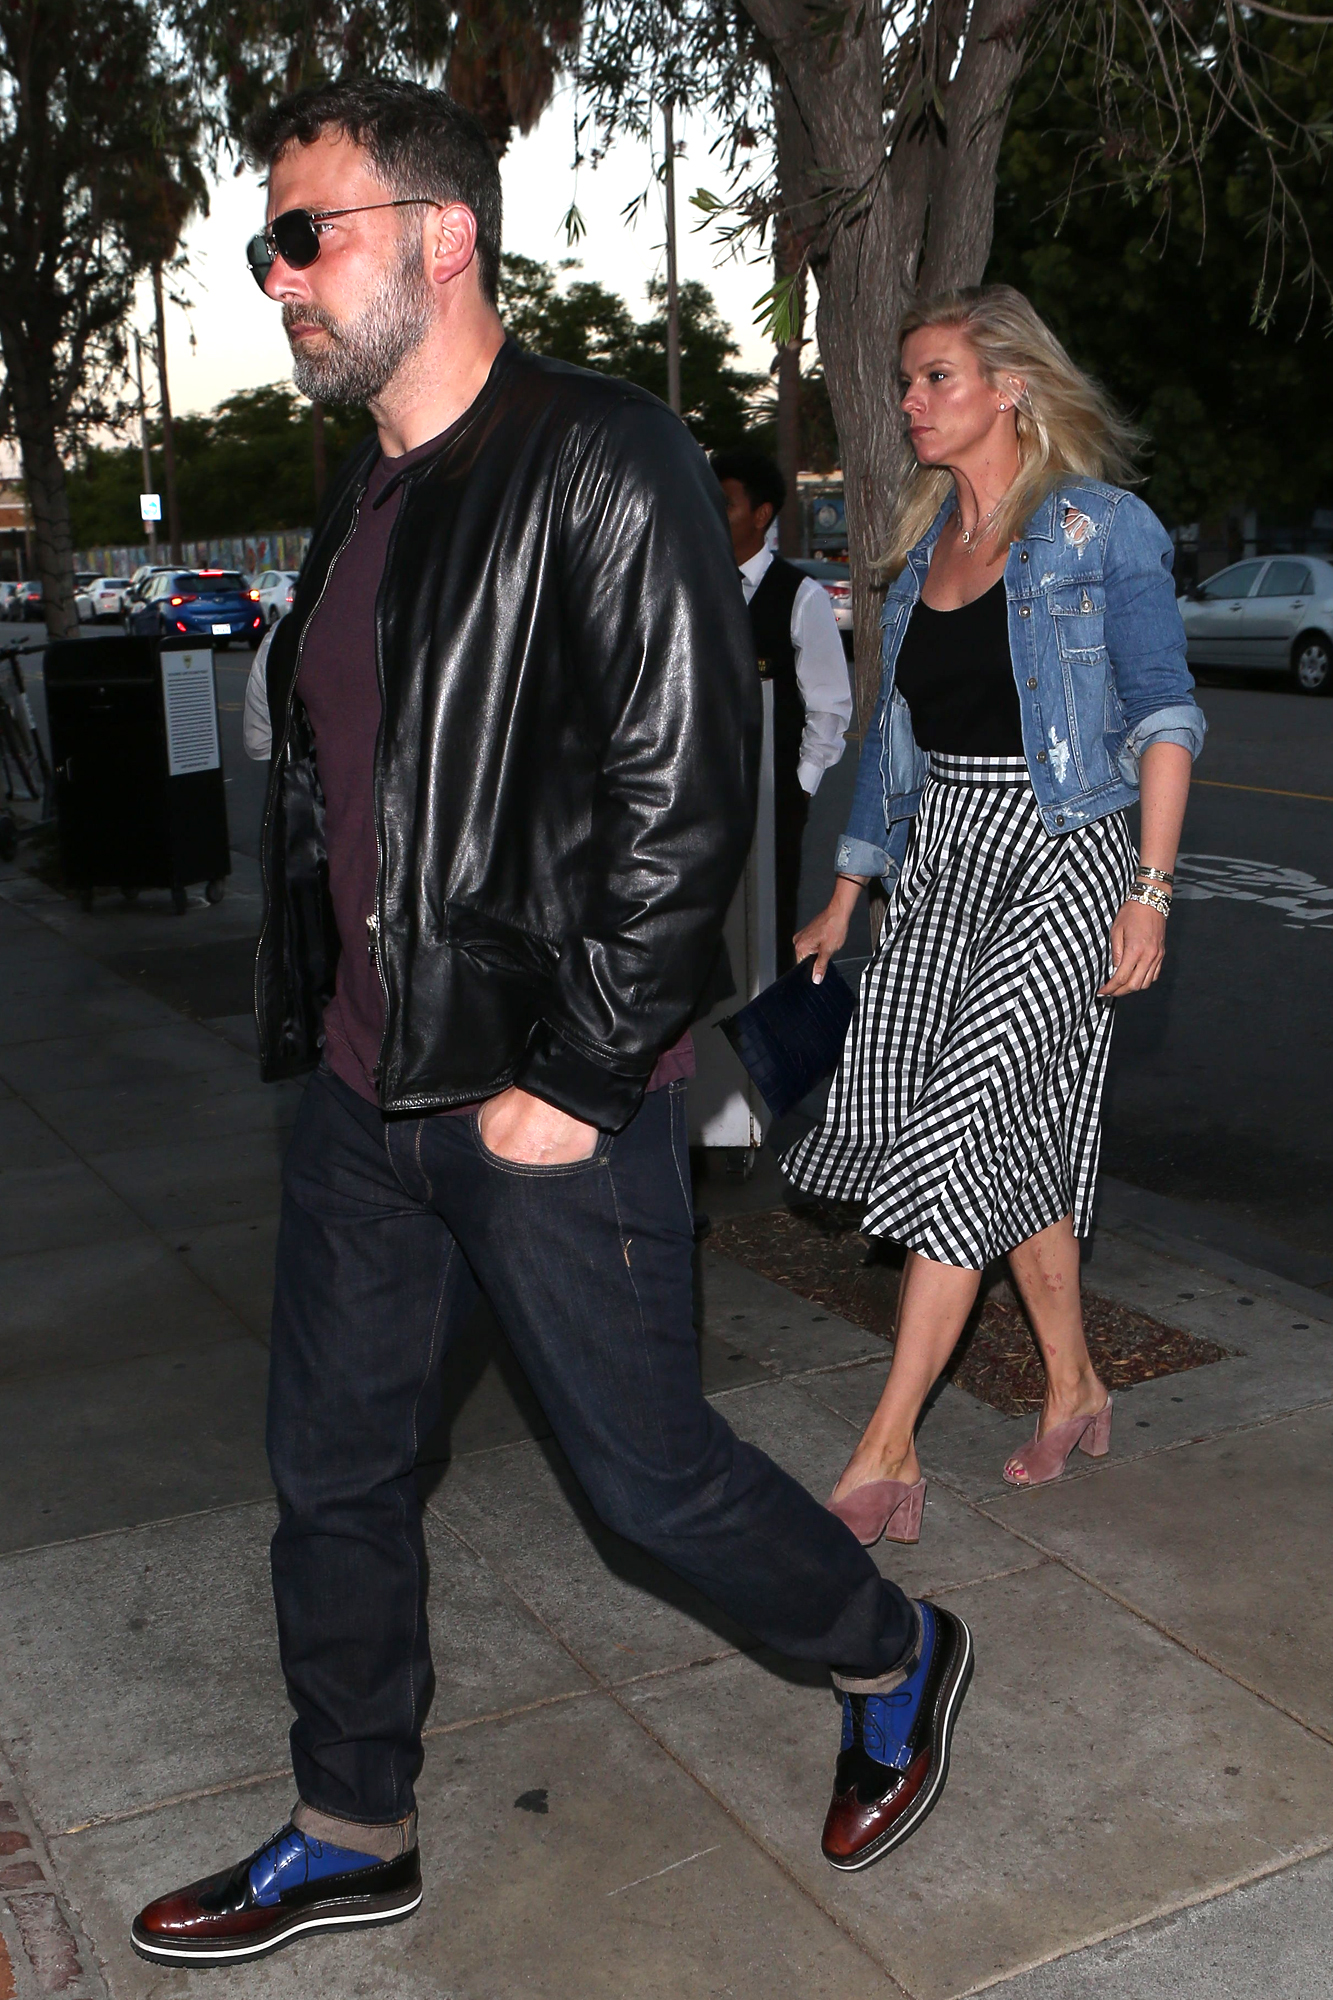 PREMIUM EXCLUSIVE Ben Affleck And Lindsay Shookus Share Romantic Dinner Amid Pregnancy Rumors Part2